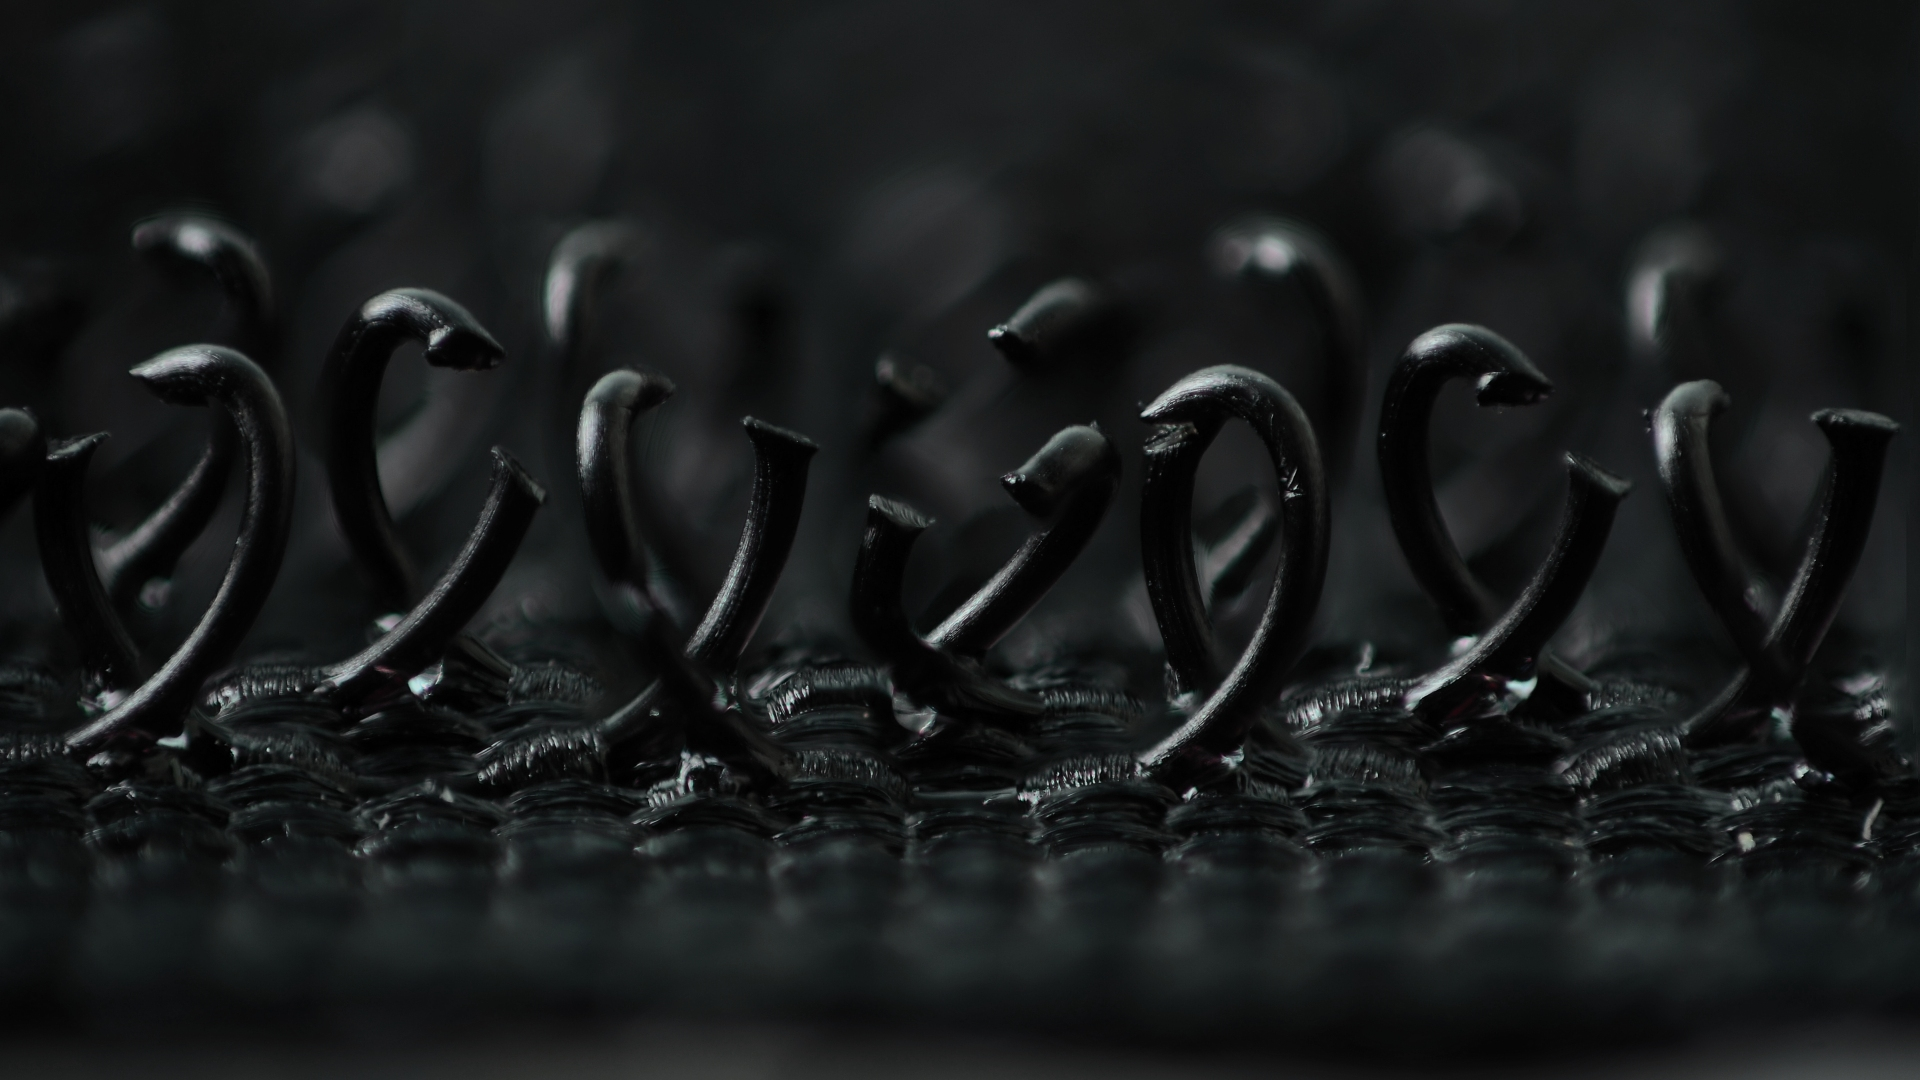 Hook_and_loop_fastener_-_macro_photograph_of__hooks_.jpg